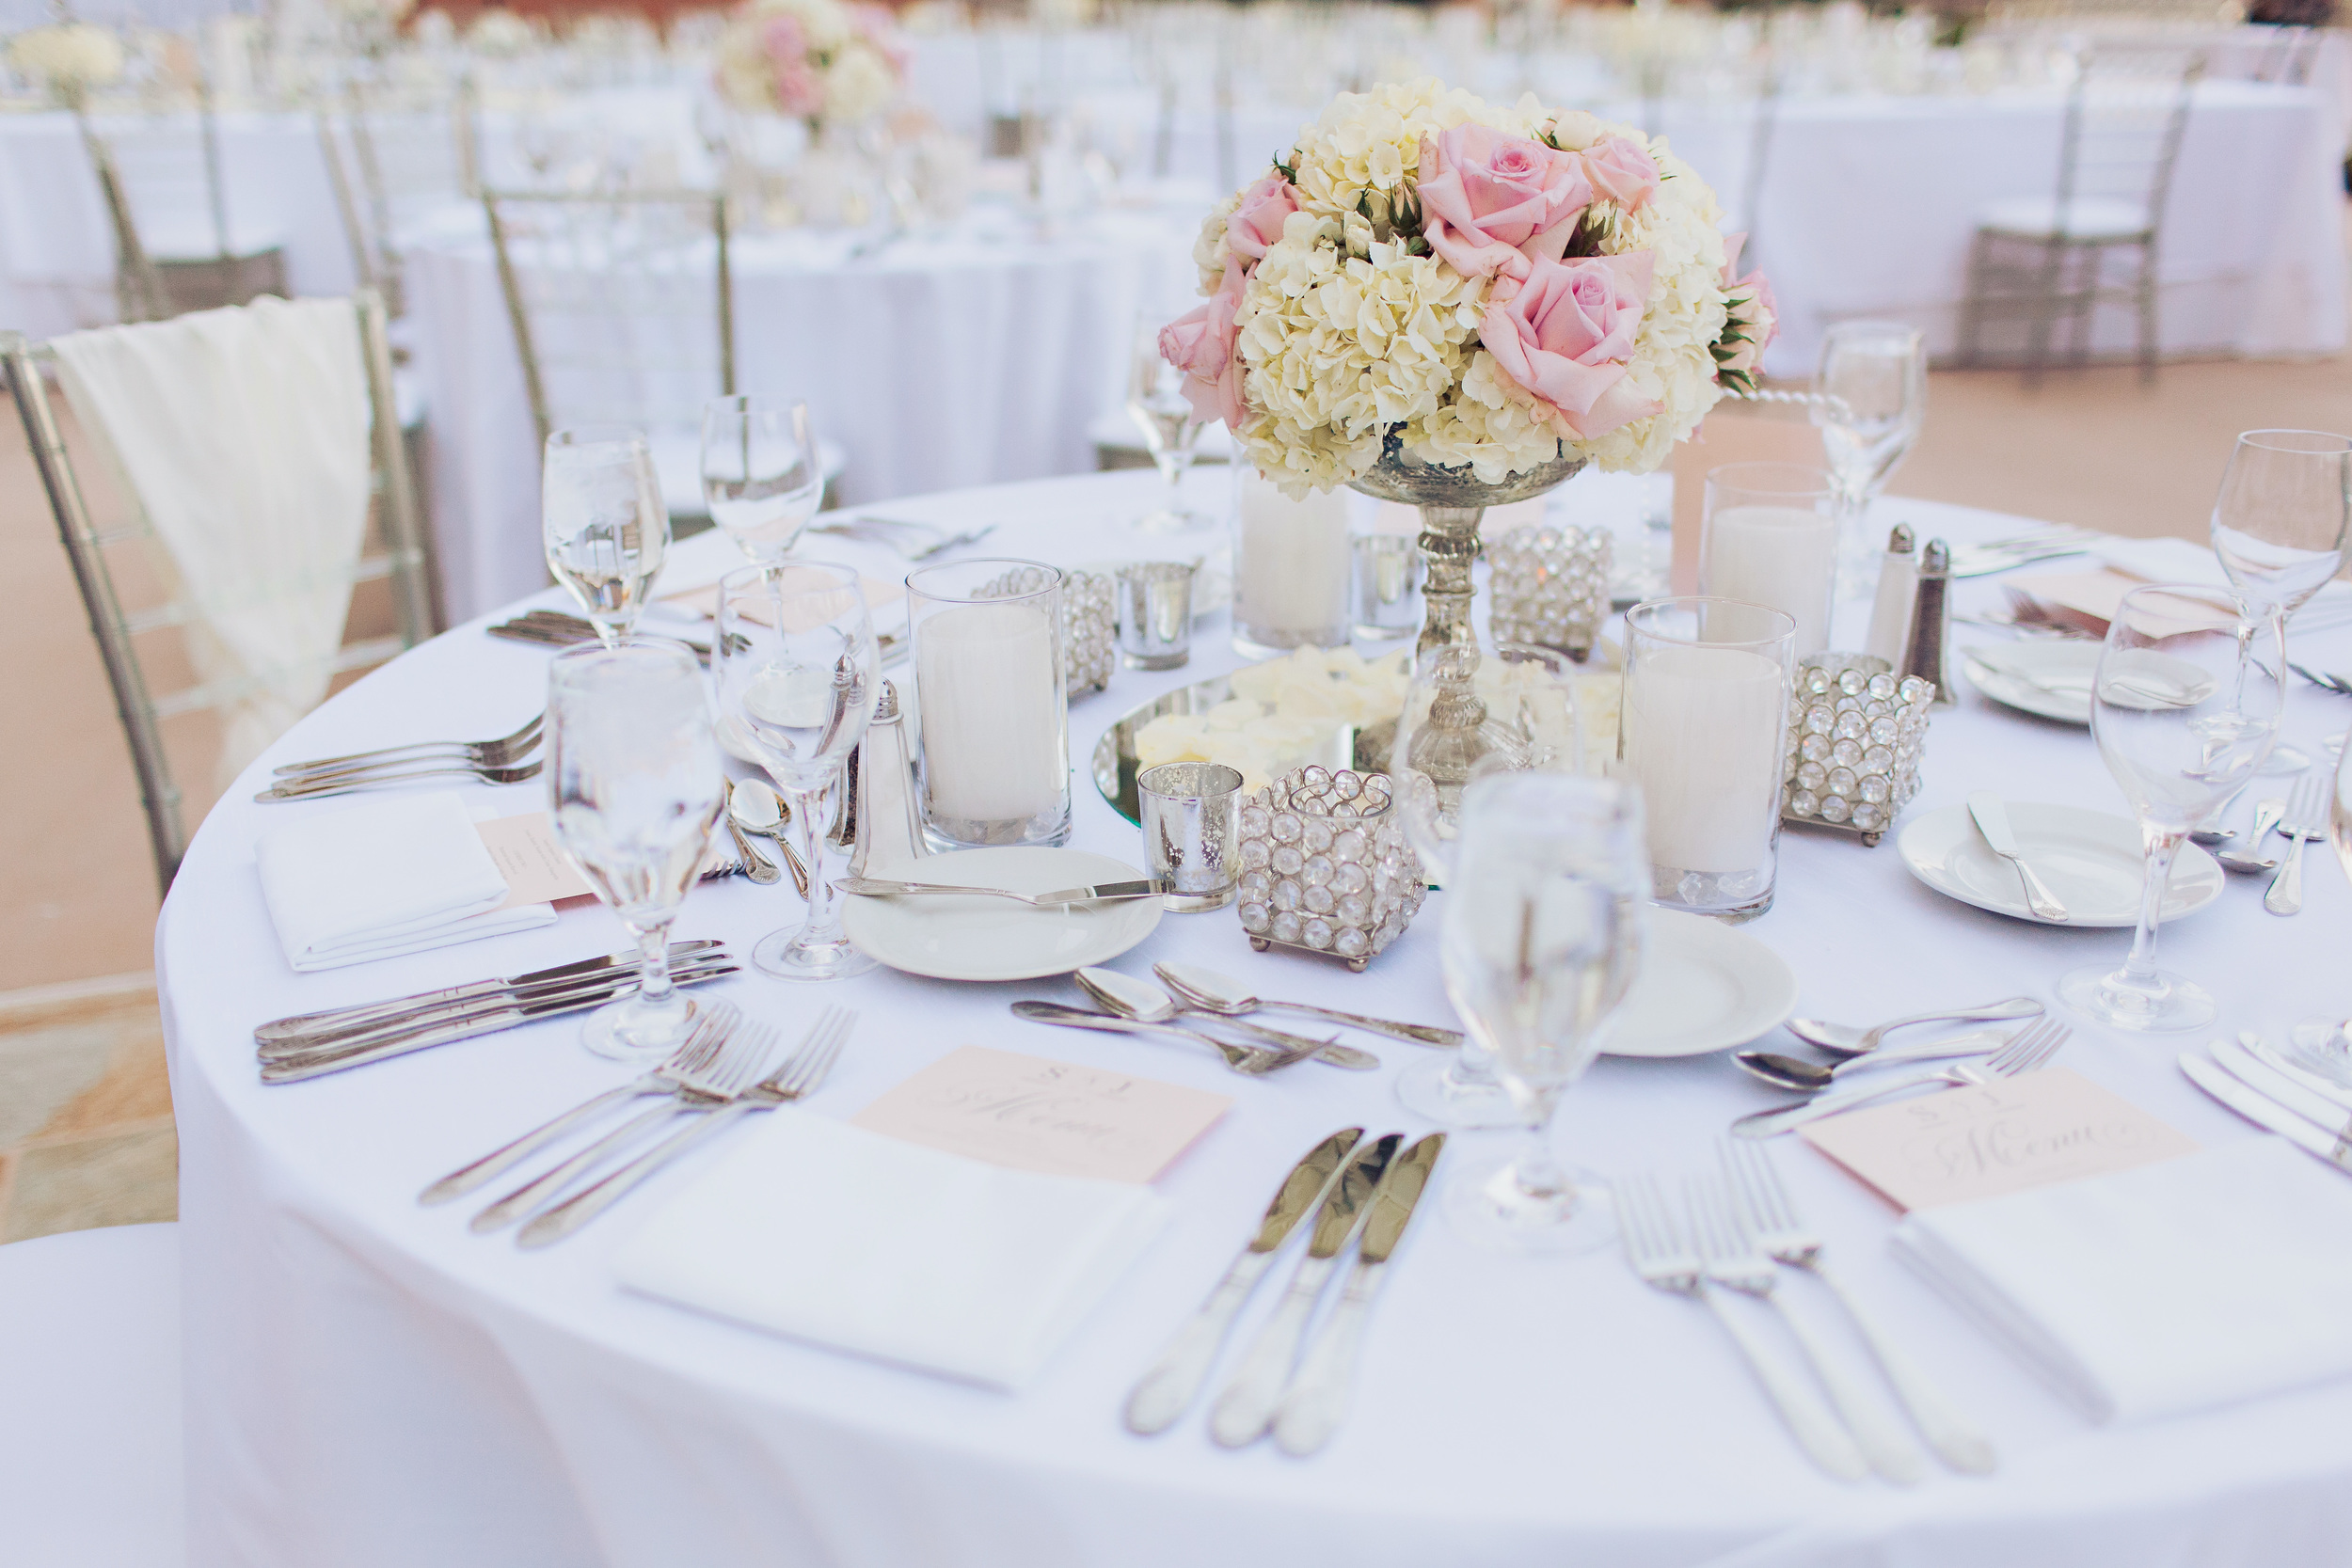 The soft pink roses were hand-opened to give a lush, full feeling to the low centerpieces and to compliment the fullness of the hydrangea.  Las Vegas Wedding Planner Andrea Eppolito   Wedding at Lake Las Vegas   White and Blu  sh and Grey Wedding